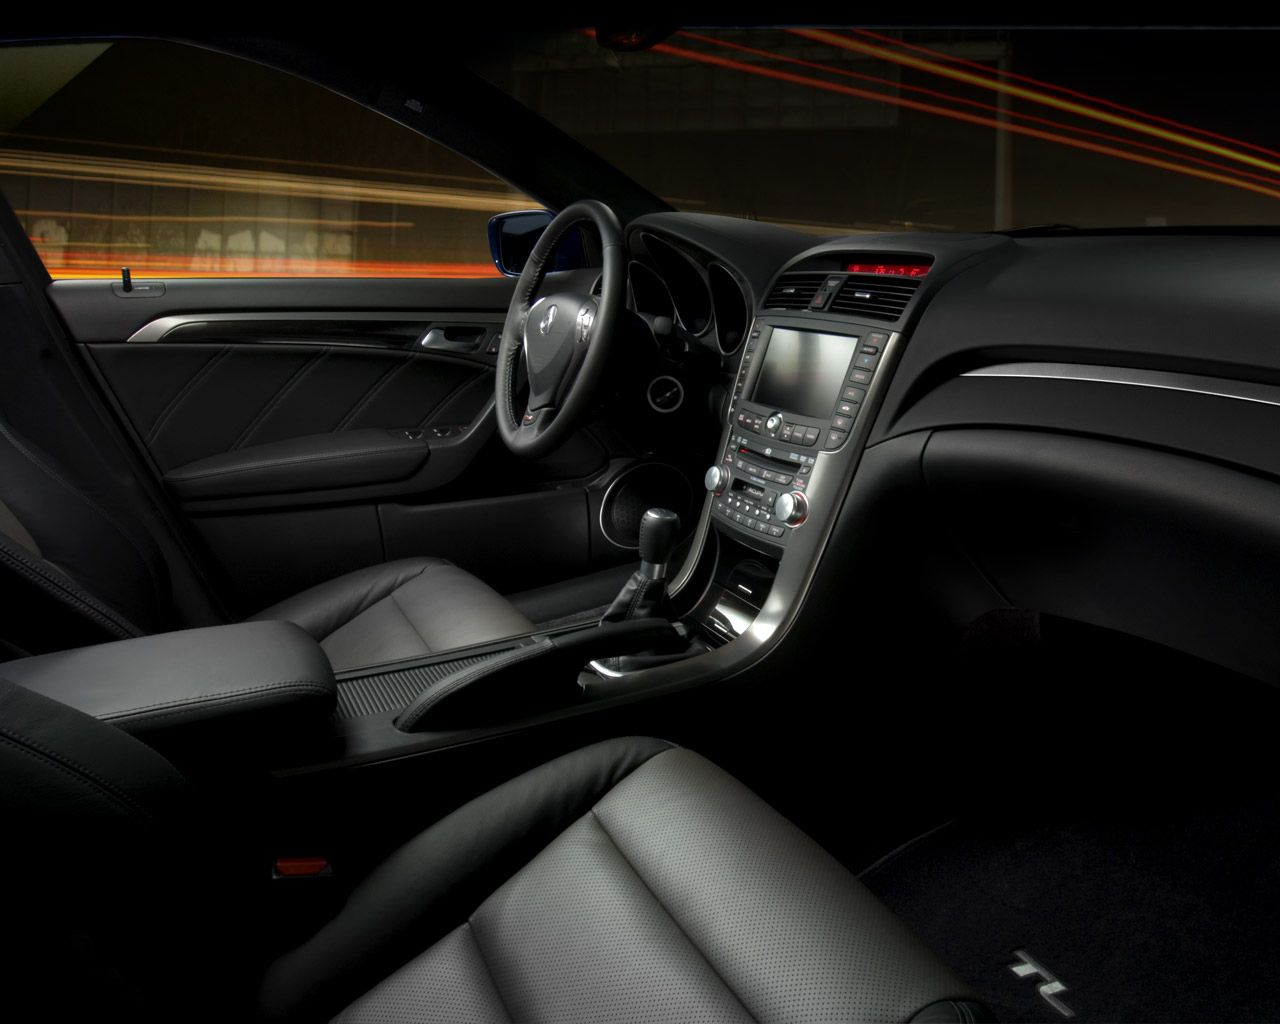 2007 Acura Tl Type S Interior And Dashboard Pinterest